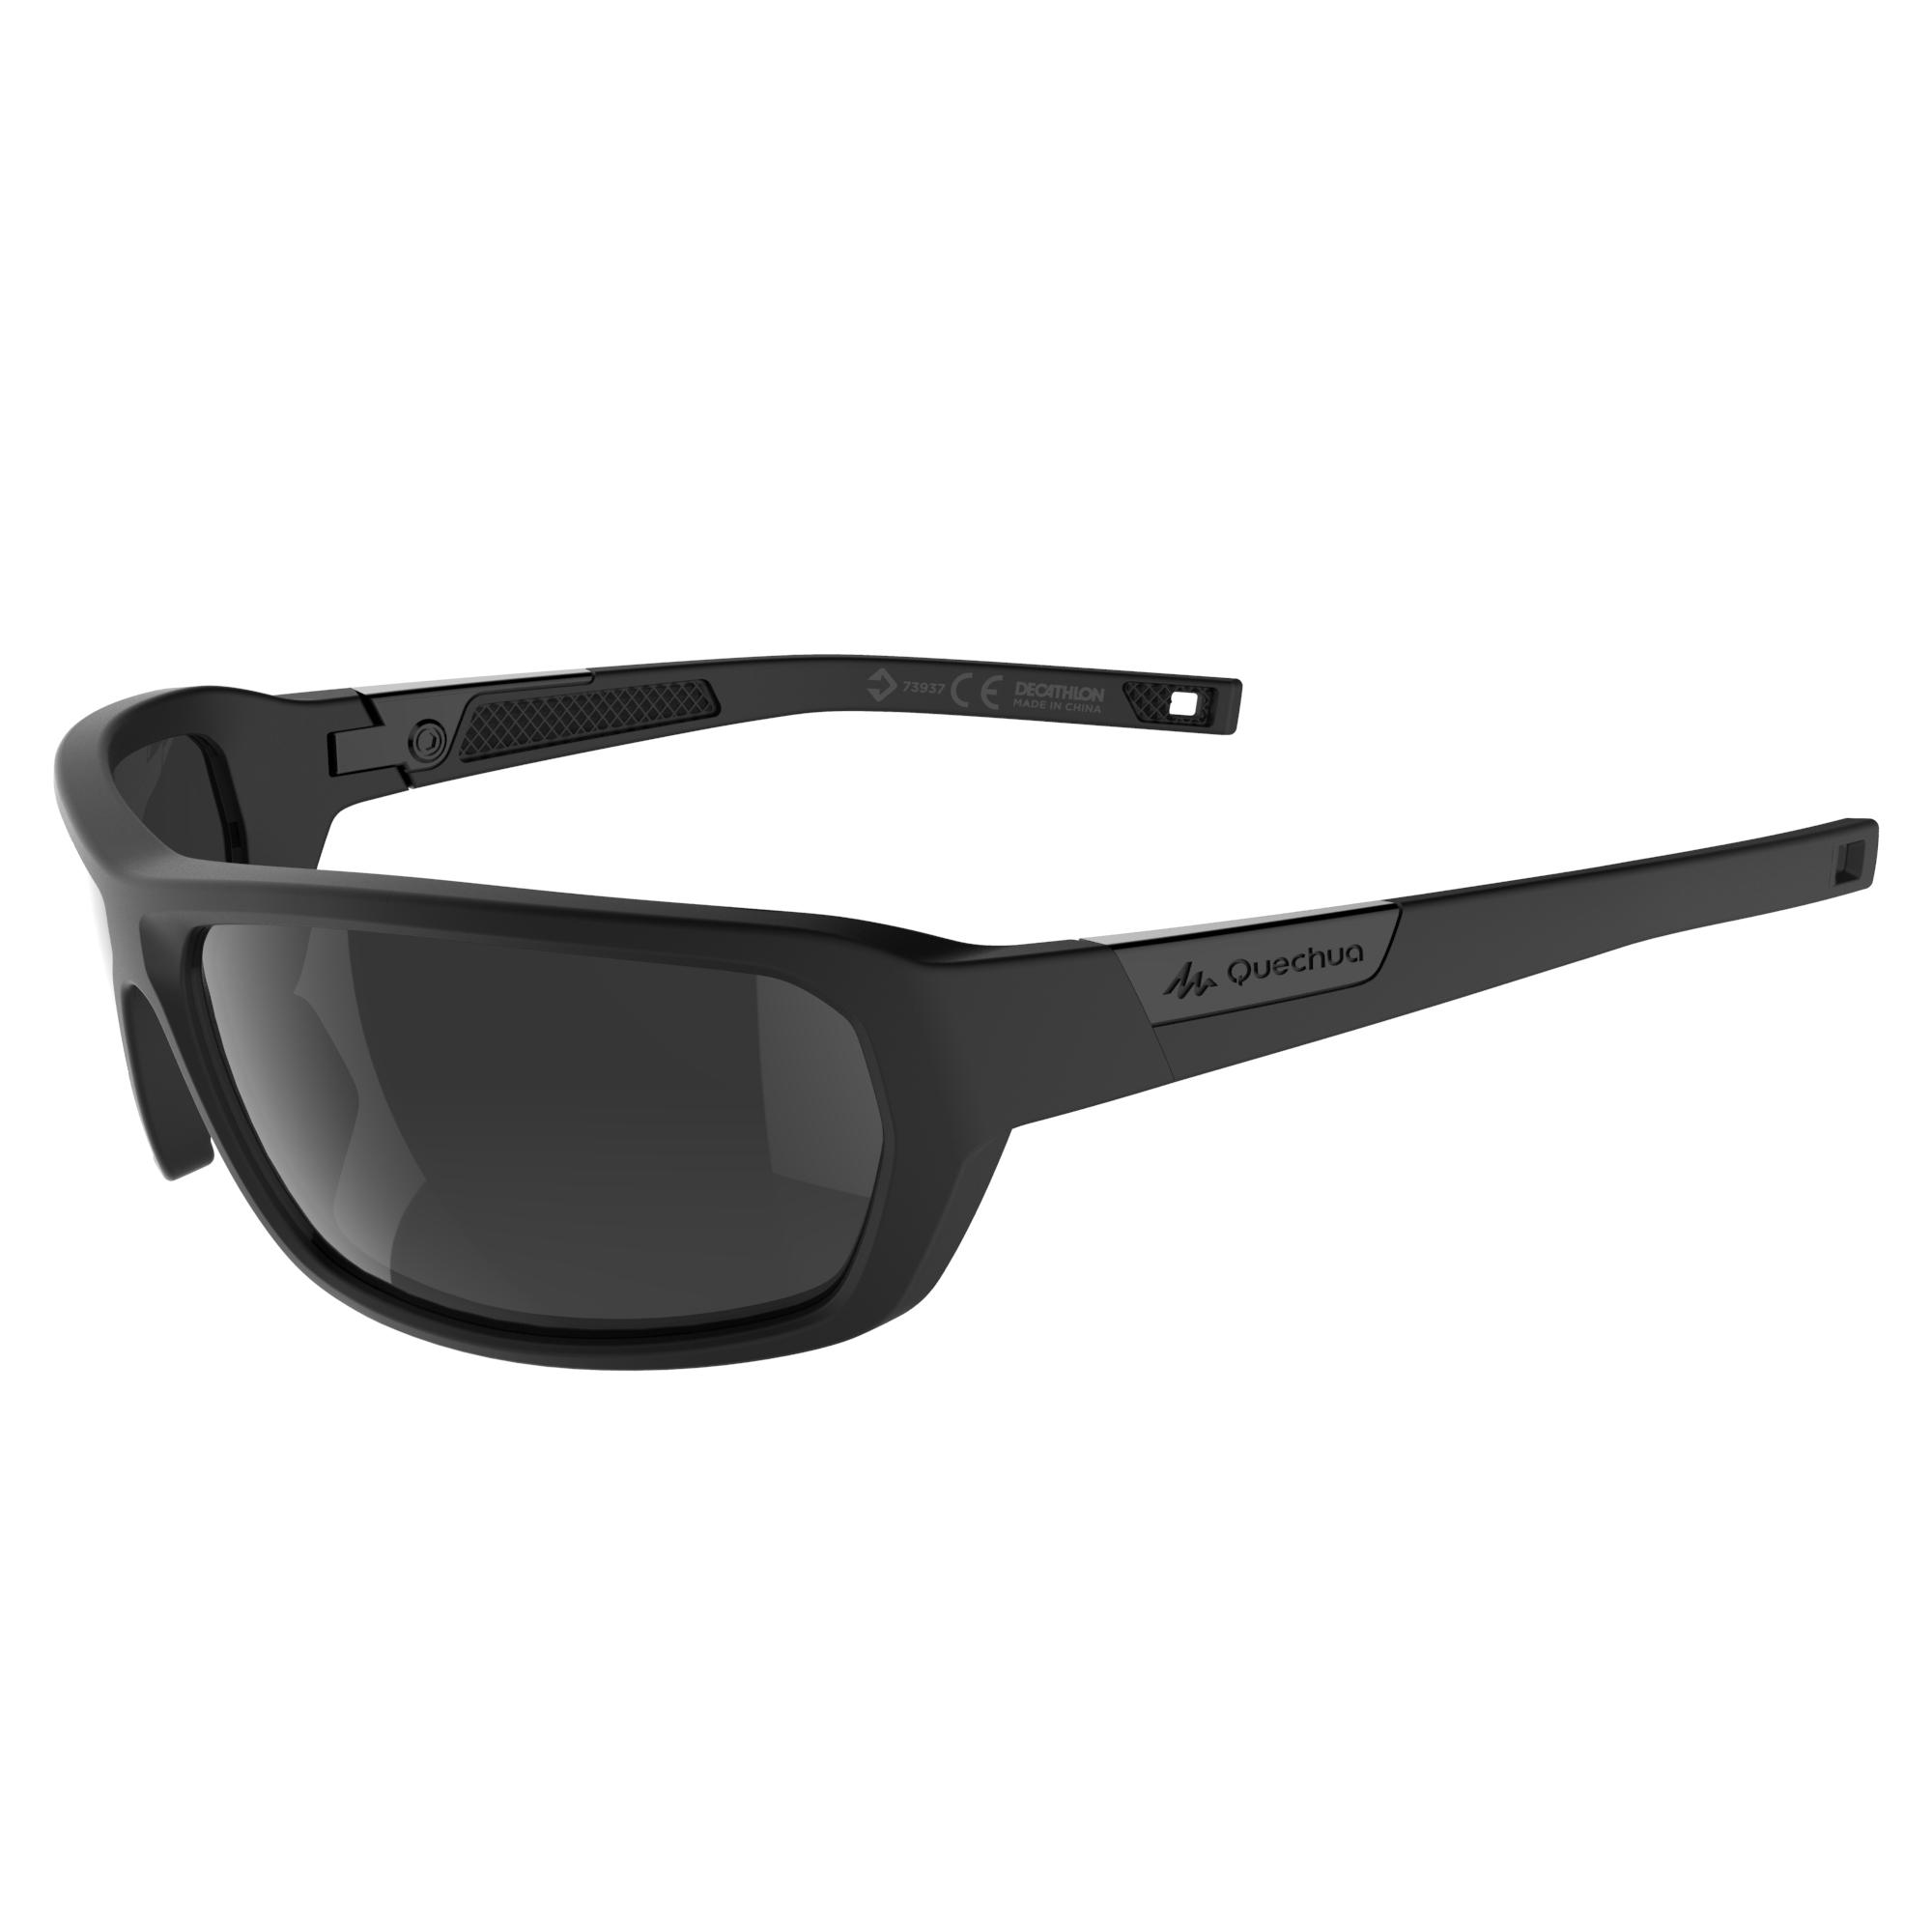 Hiking 200 Adult Hiking Sunglasses Category 3 - Black